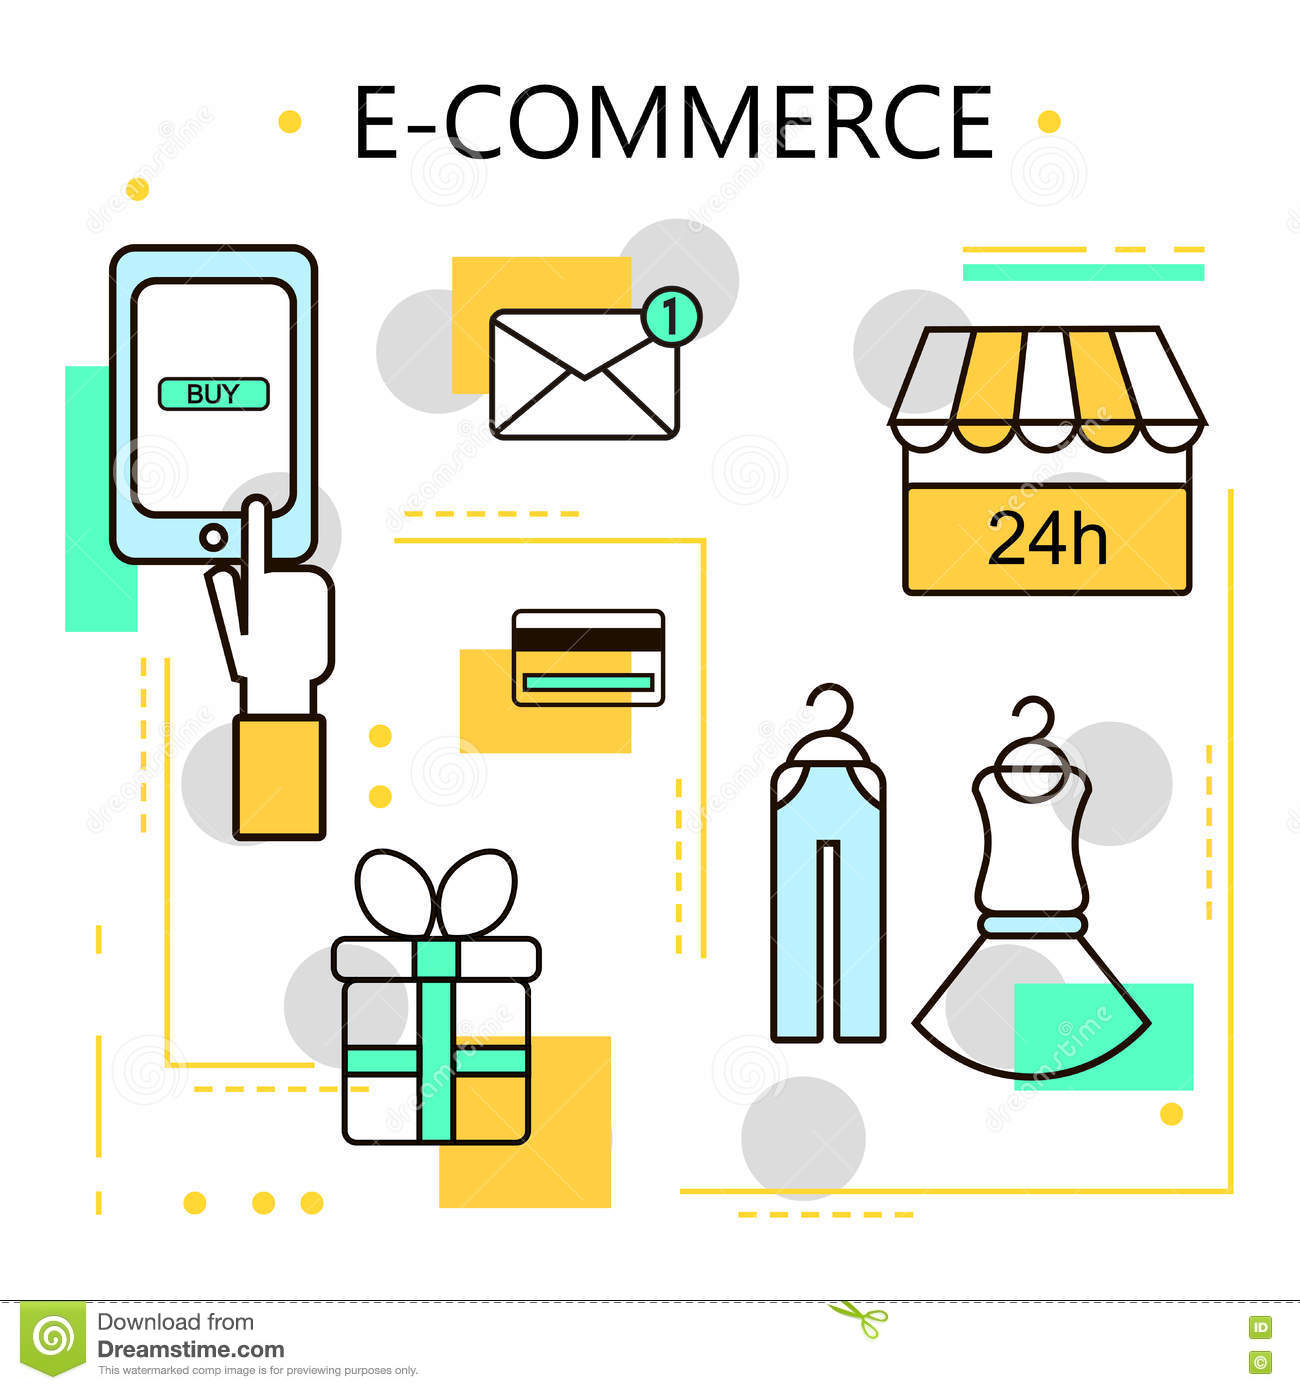 Web Services and E-Shopping Decisions: a Study on Malaysian E-Consumer